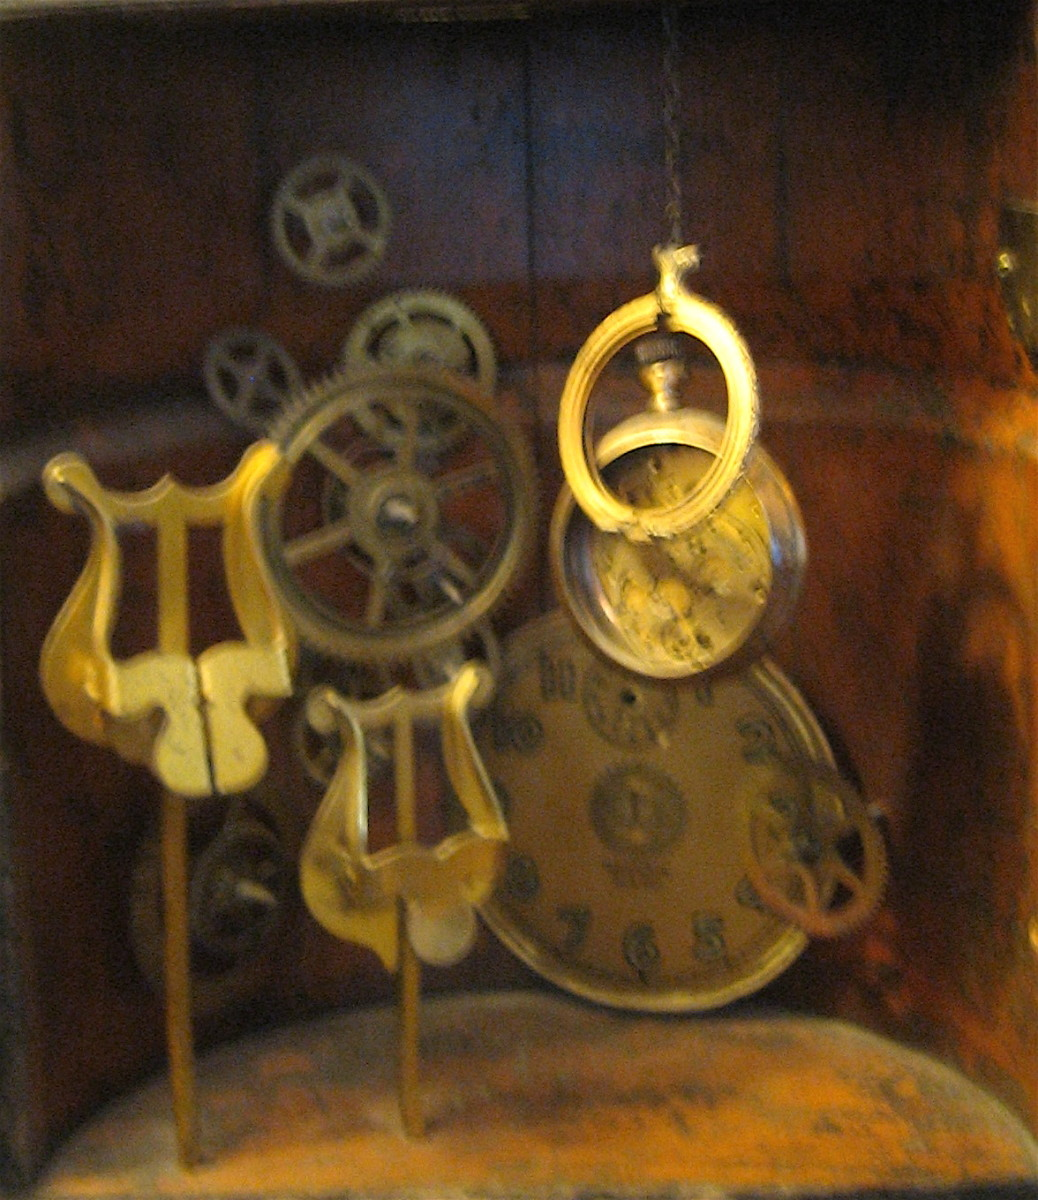 Clock gears and other pieces repurposed into artwork.